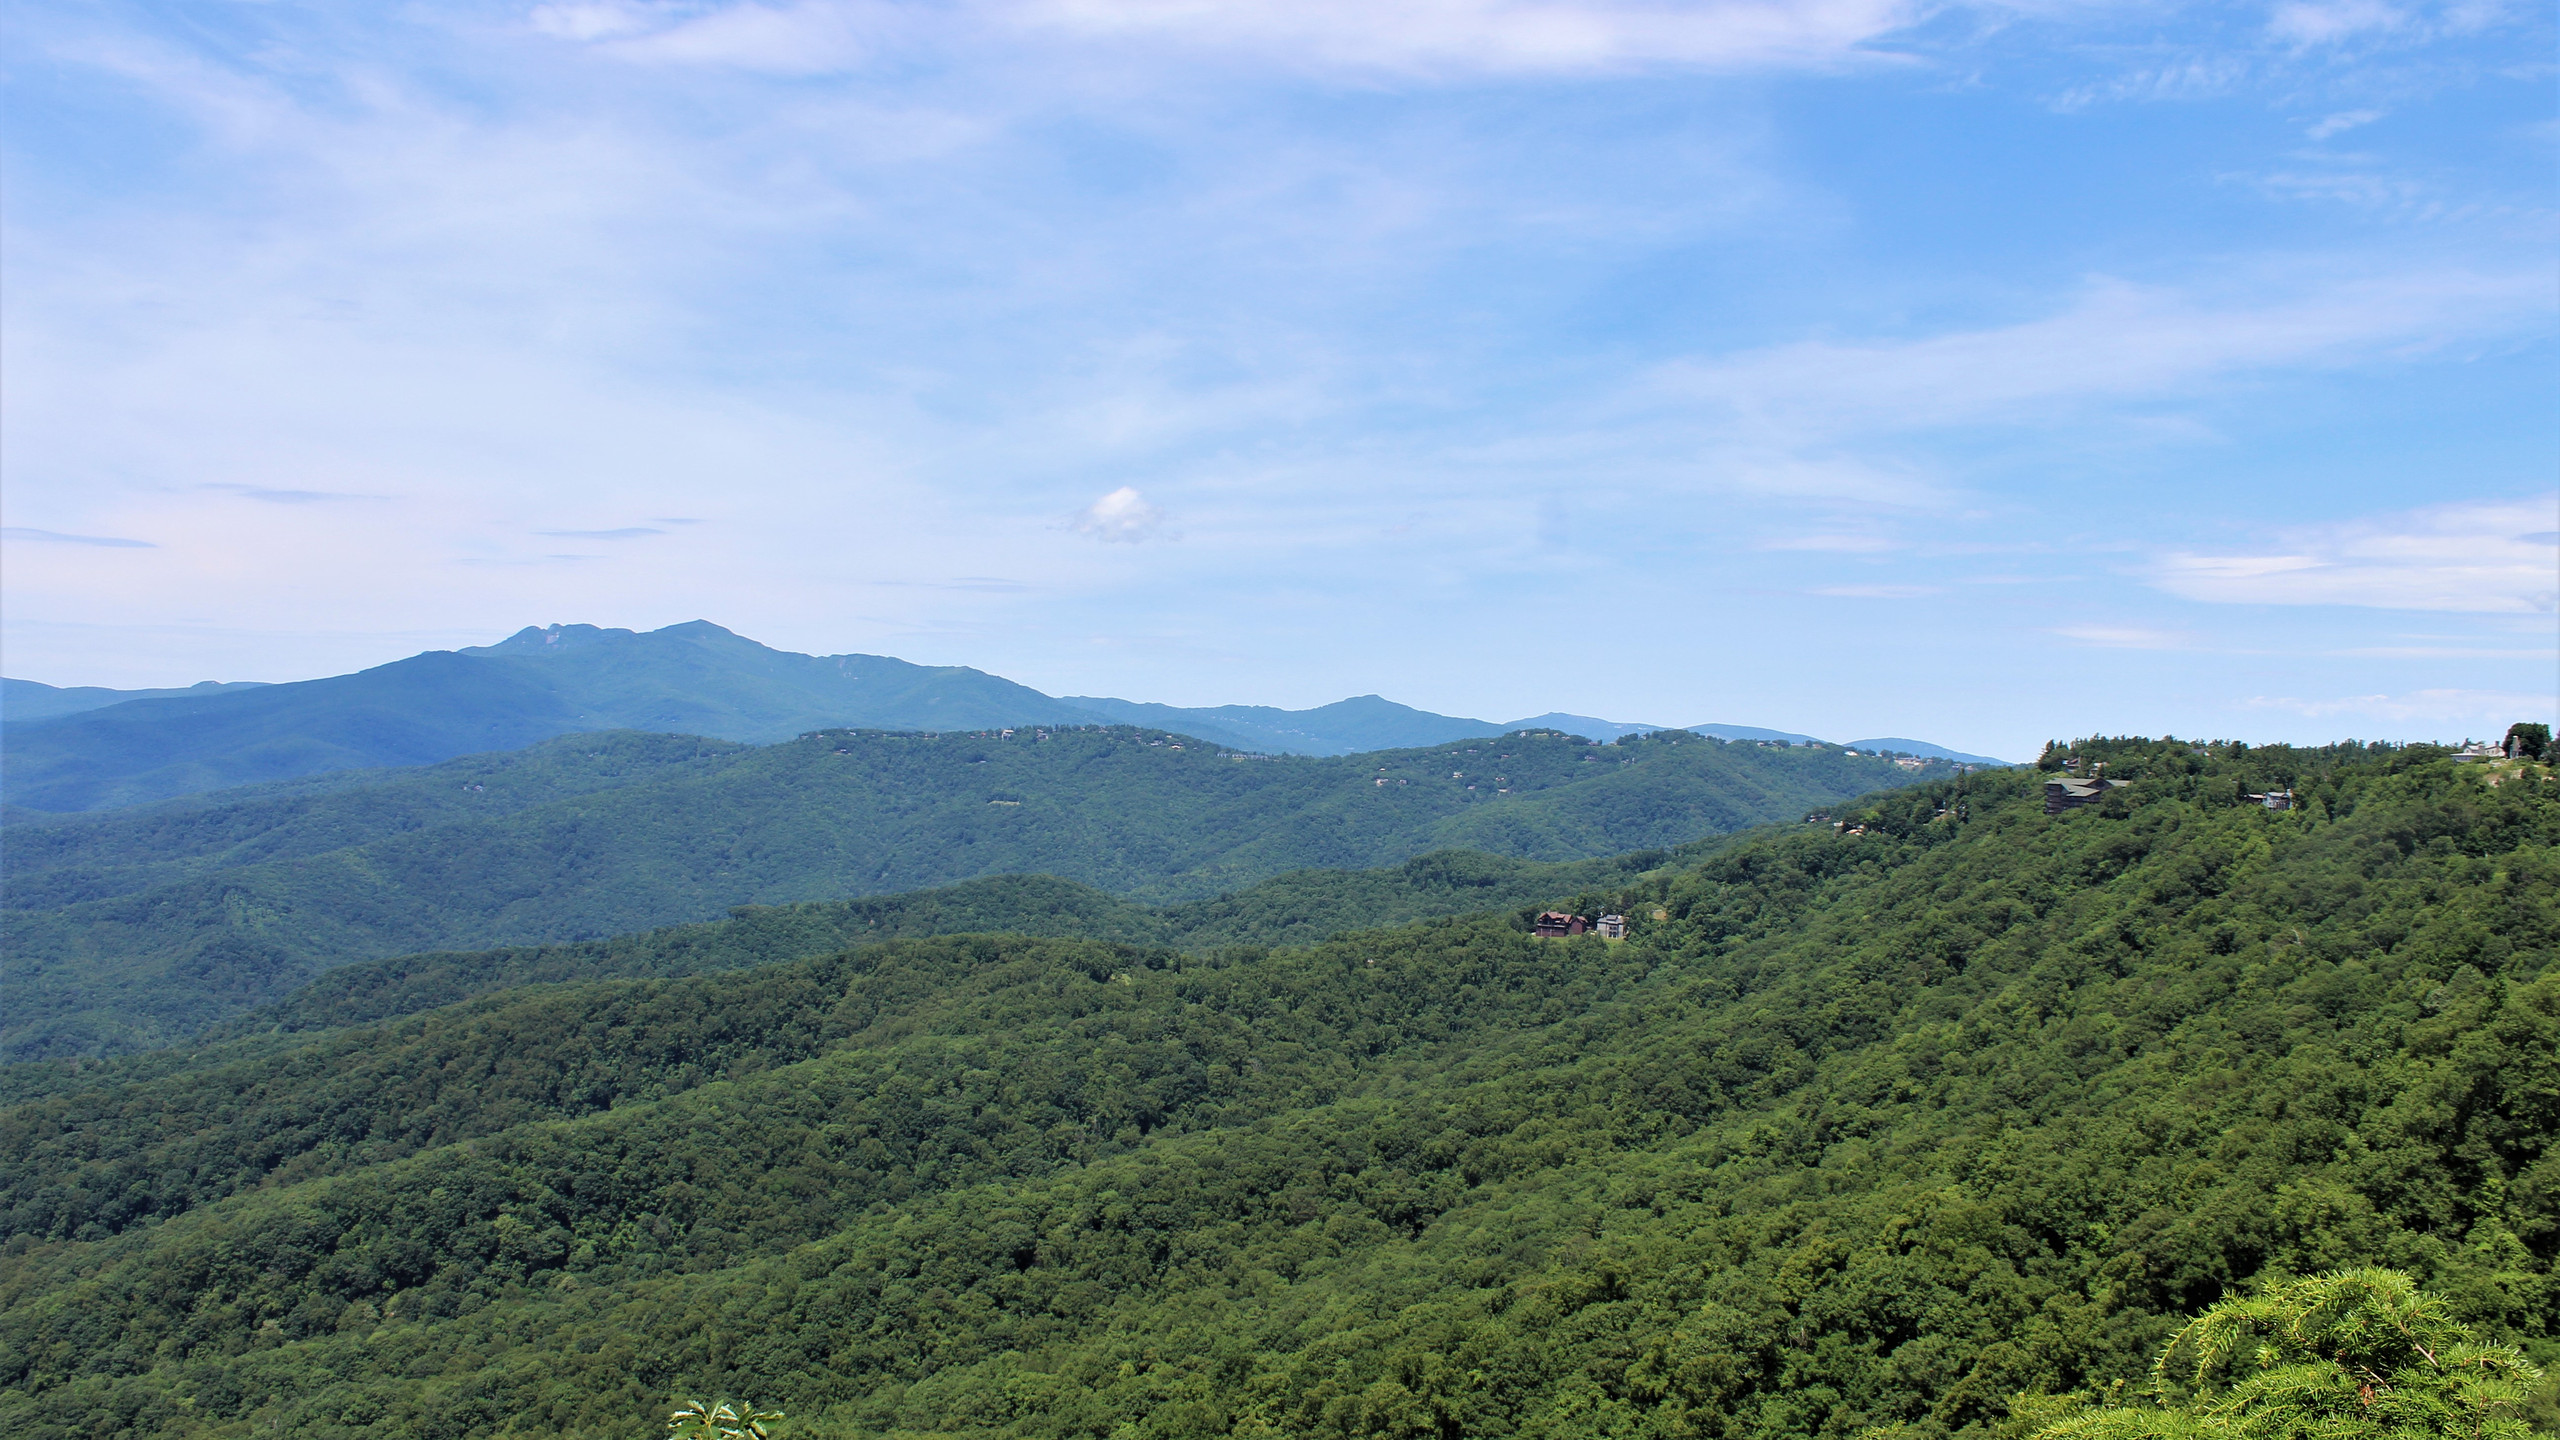 View of Grandfather Mountain